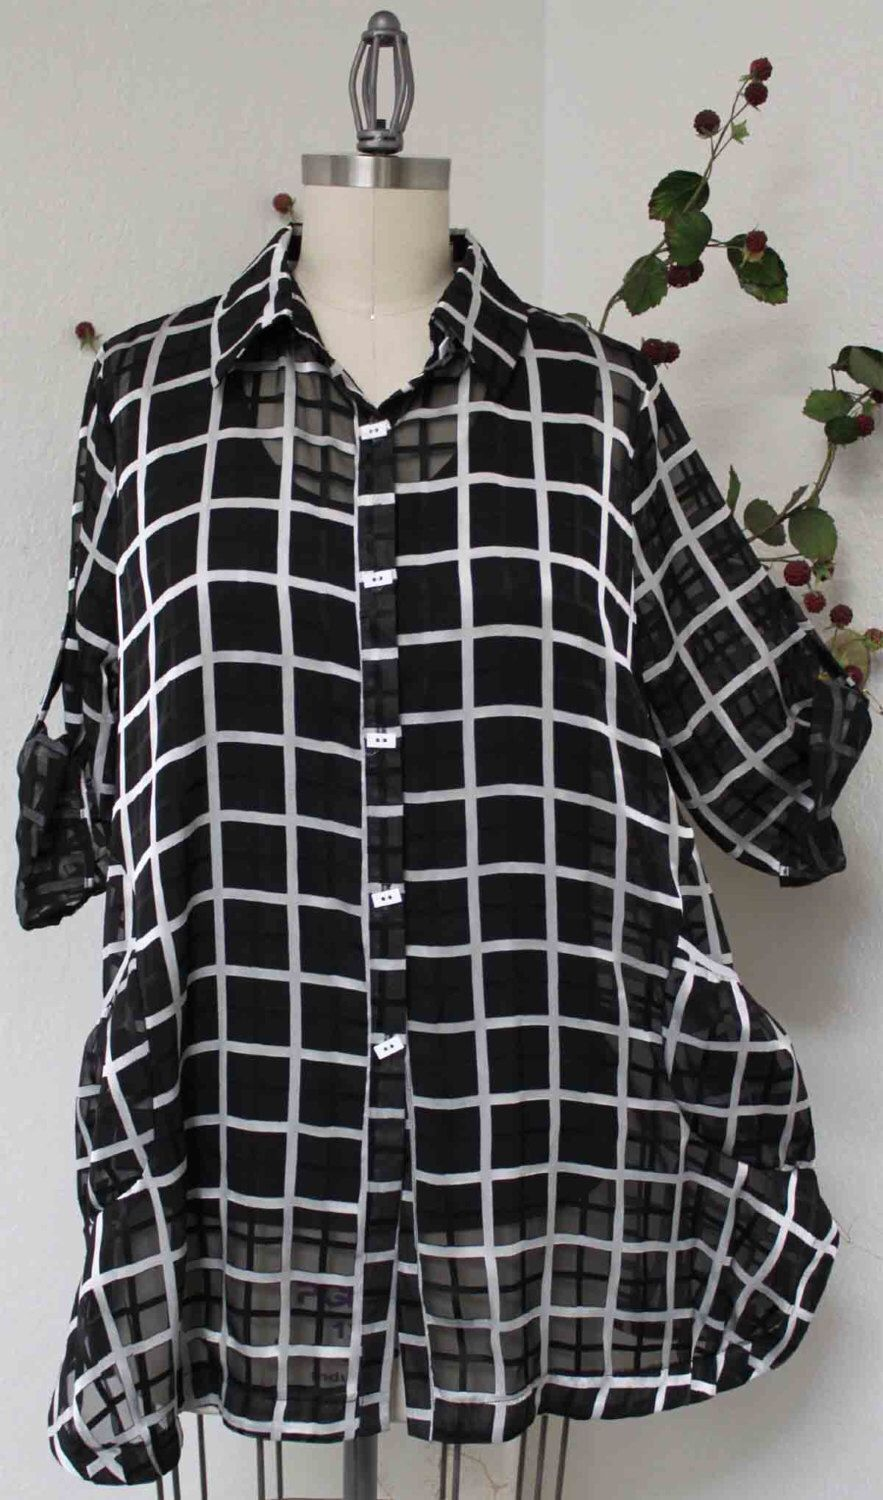 Designer Plus size and Regular size shirt, M to 3XL by Dare2bStylish on Etsy https://www.etsy.com/listing/182792121/designer-plus-size-and-regular-size